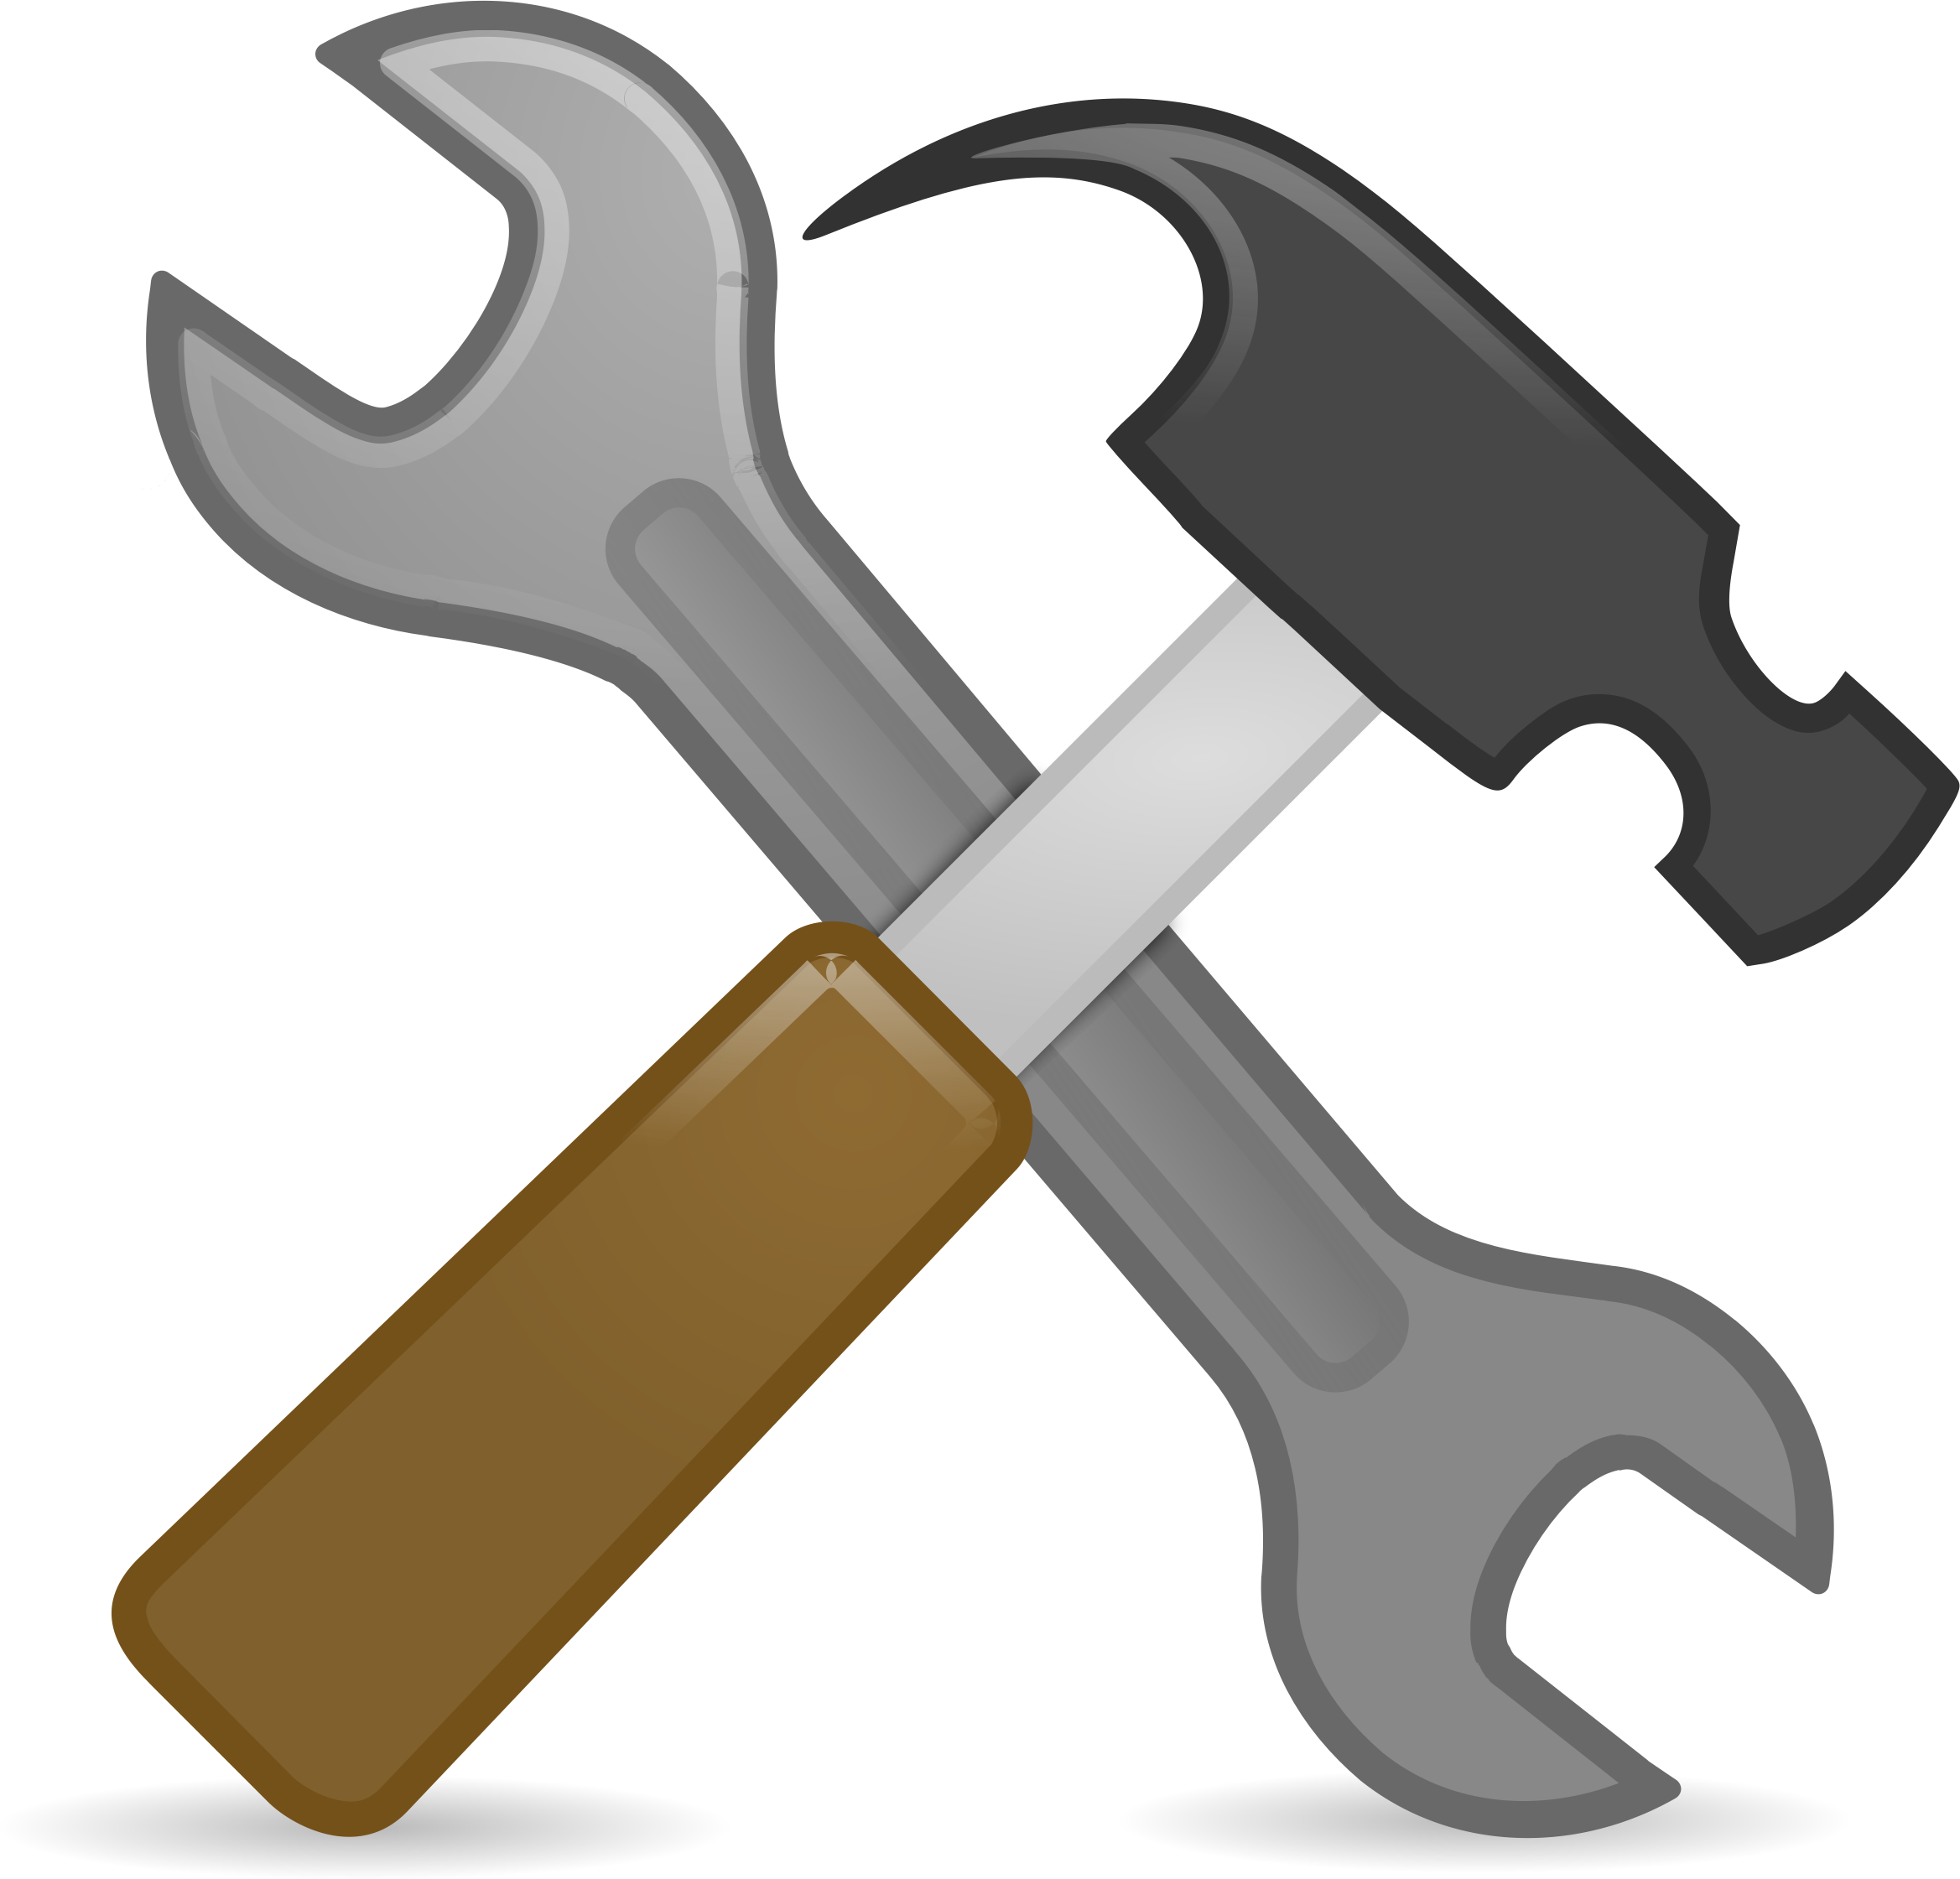 royalty free Hammer clipart hand tool. System preferences big image